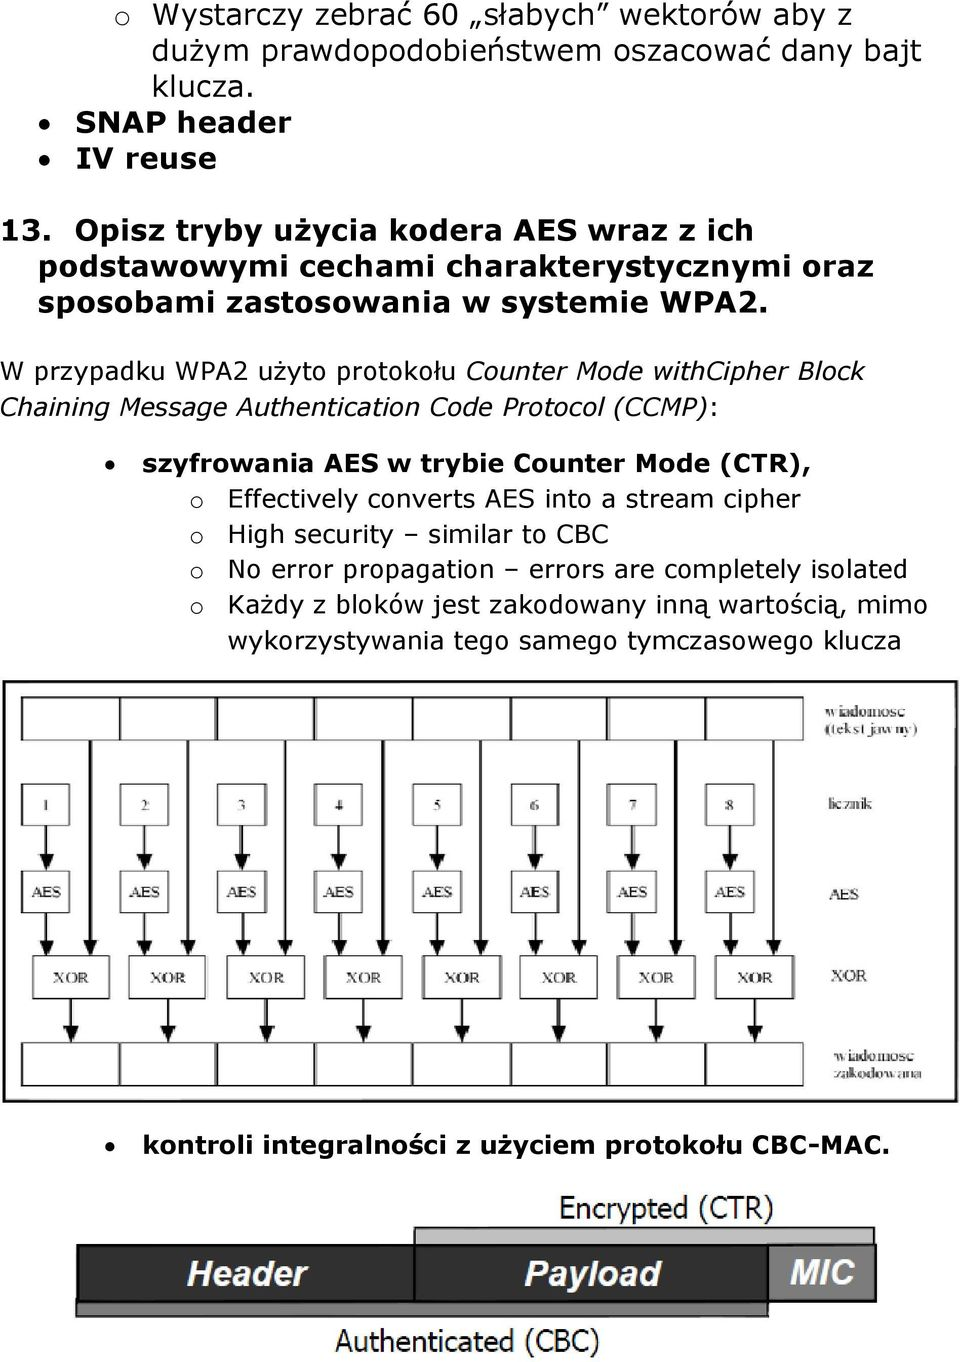 W przypadku WPA2 użyto protokołu Counter Mode withcipher Block Chaining Message Authentication Code Protocol (CCMP): szyfrowania AES w trybie Counter Mode (CTR), o